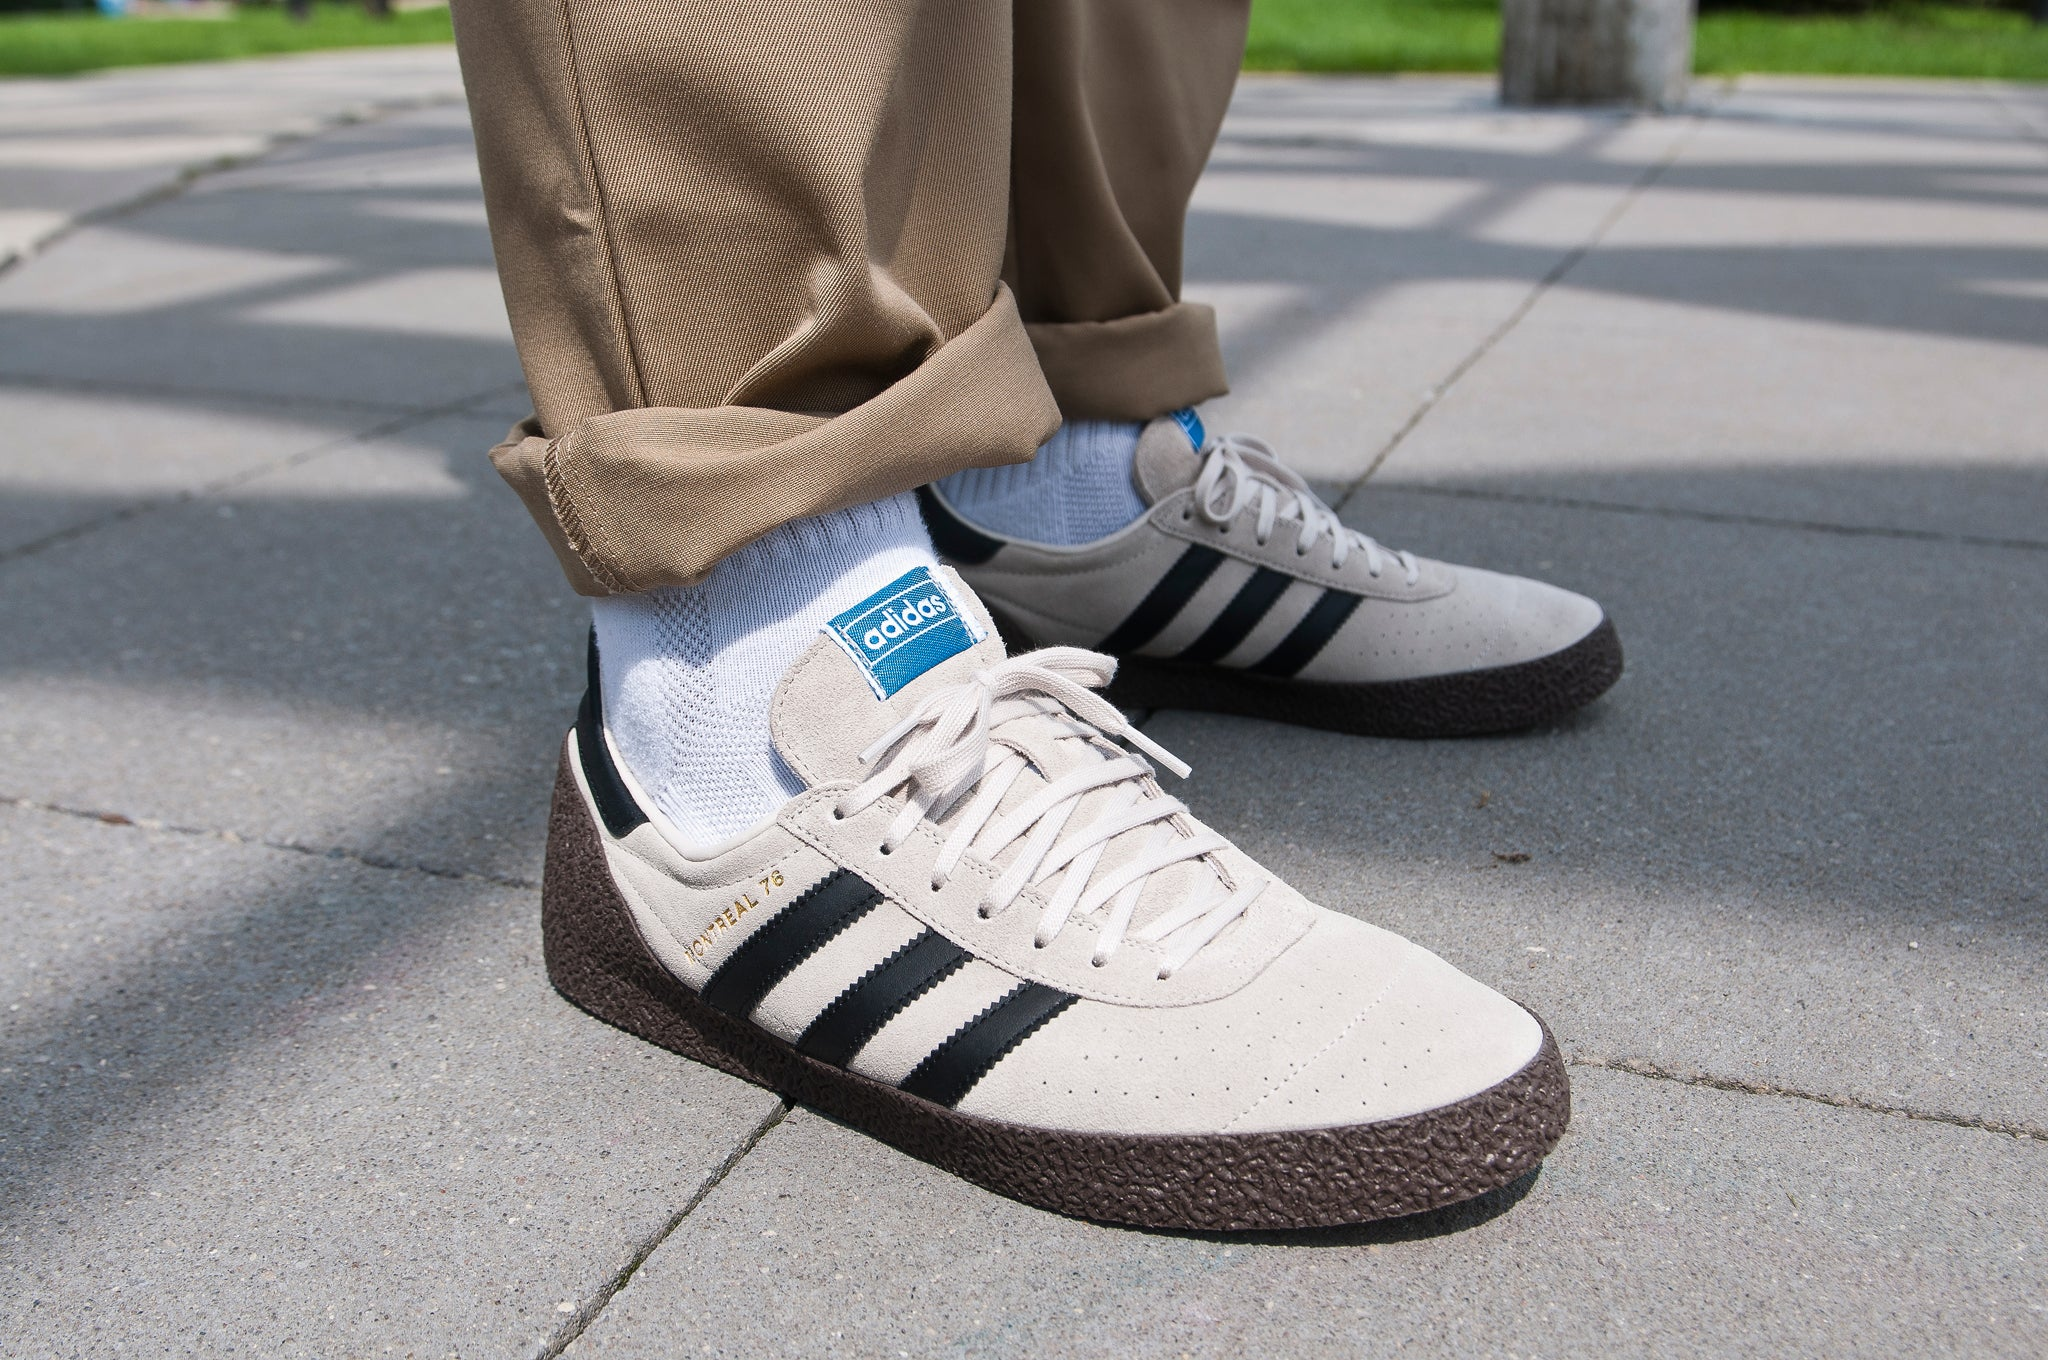 Adidas Originals Montreal '76 Clear Brown/Core Black at shoplostfound